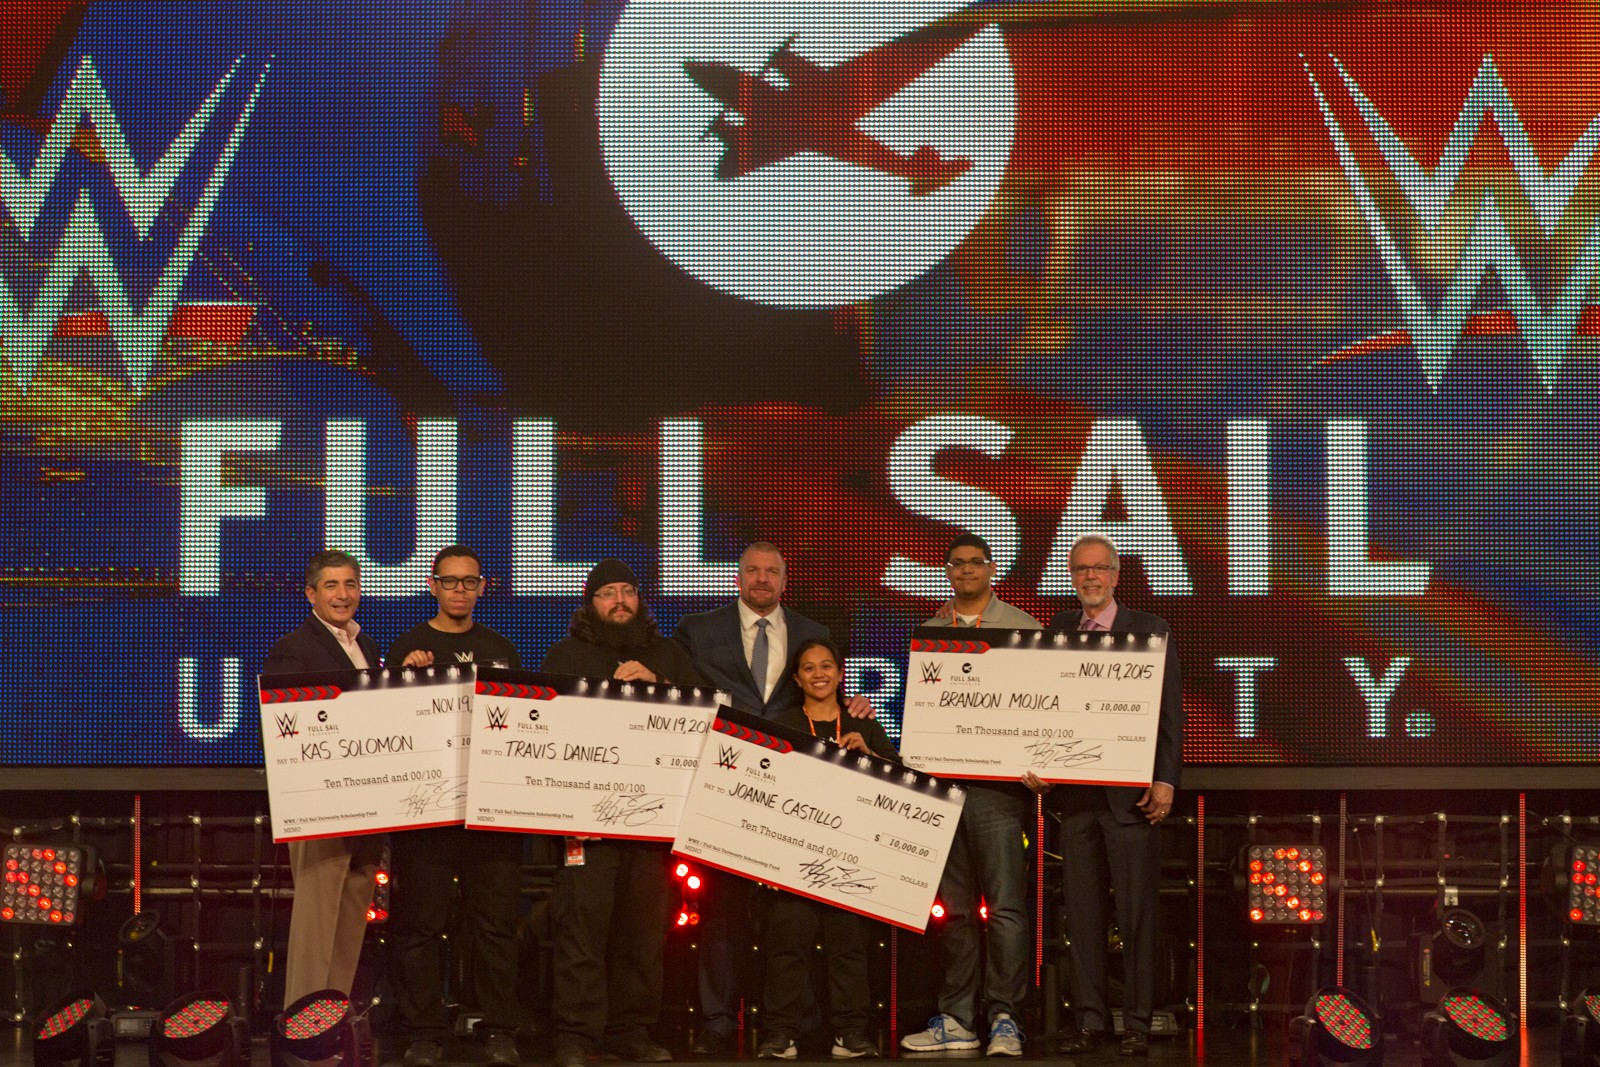 WWE Awards $180,000 in Scholarships to Full Sail University Students